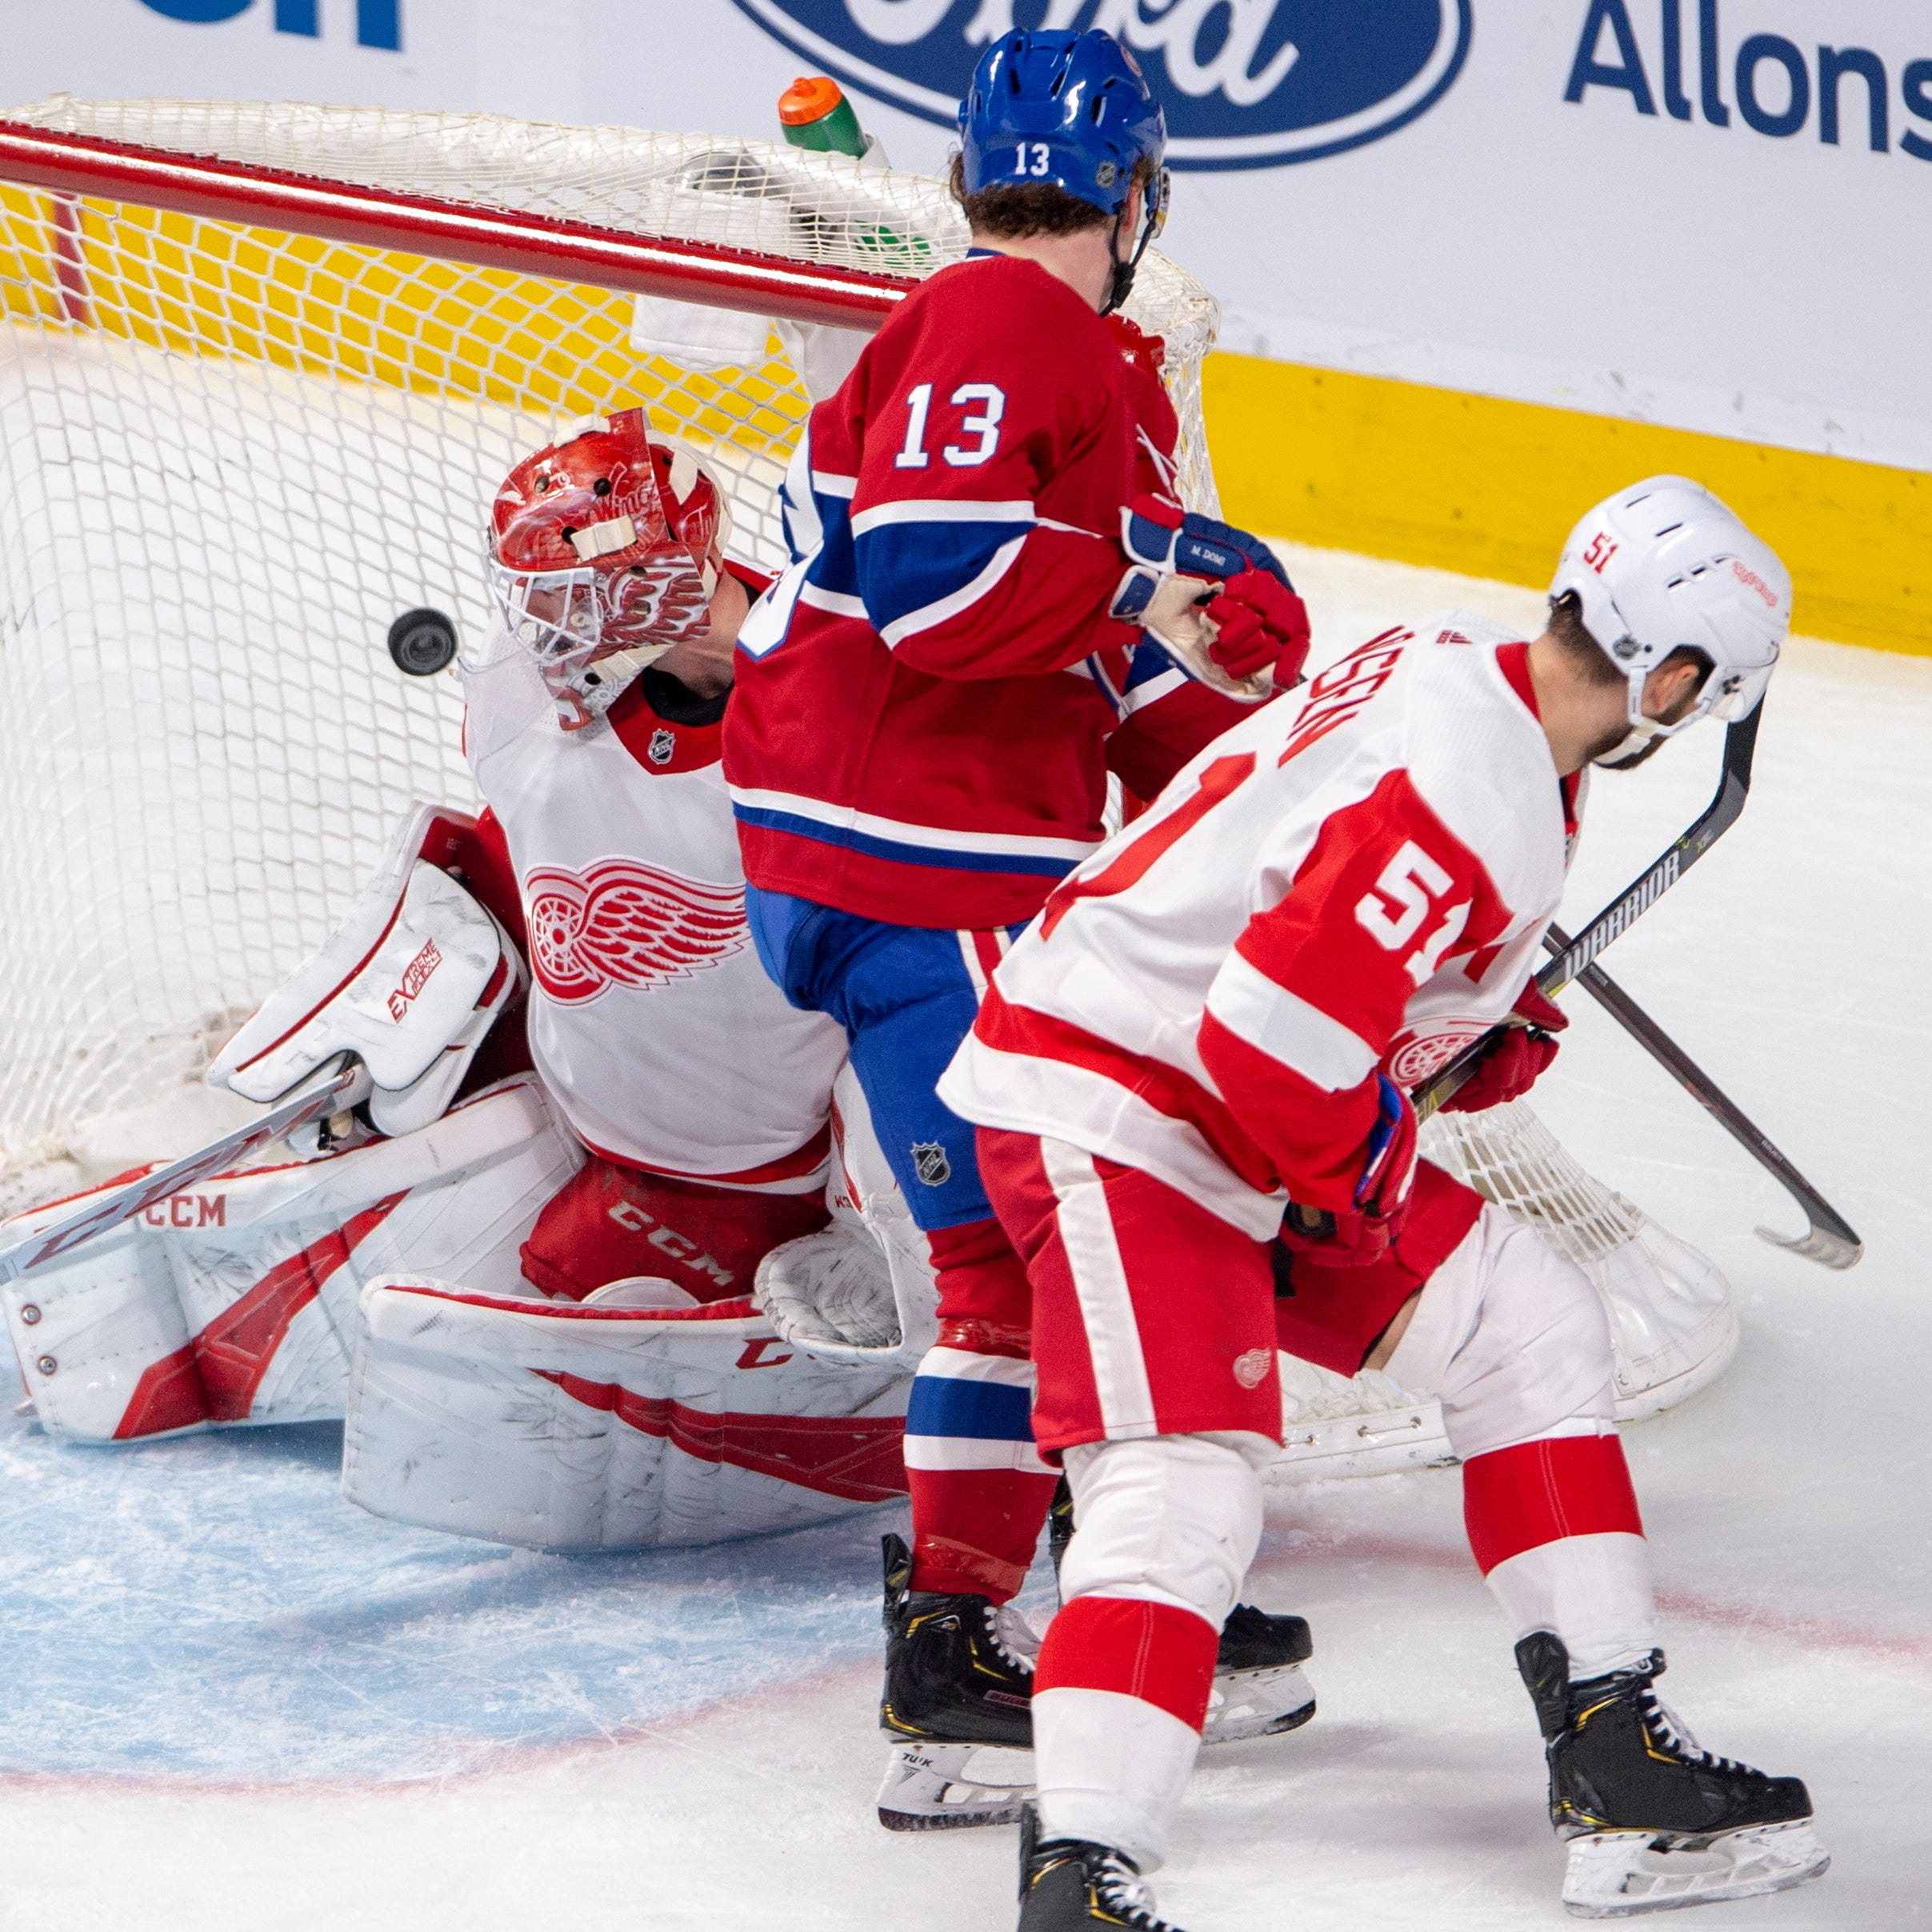 Red Wings clipped by Canadiens, eliminated from playoffs for third straight season